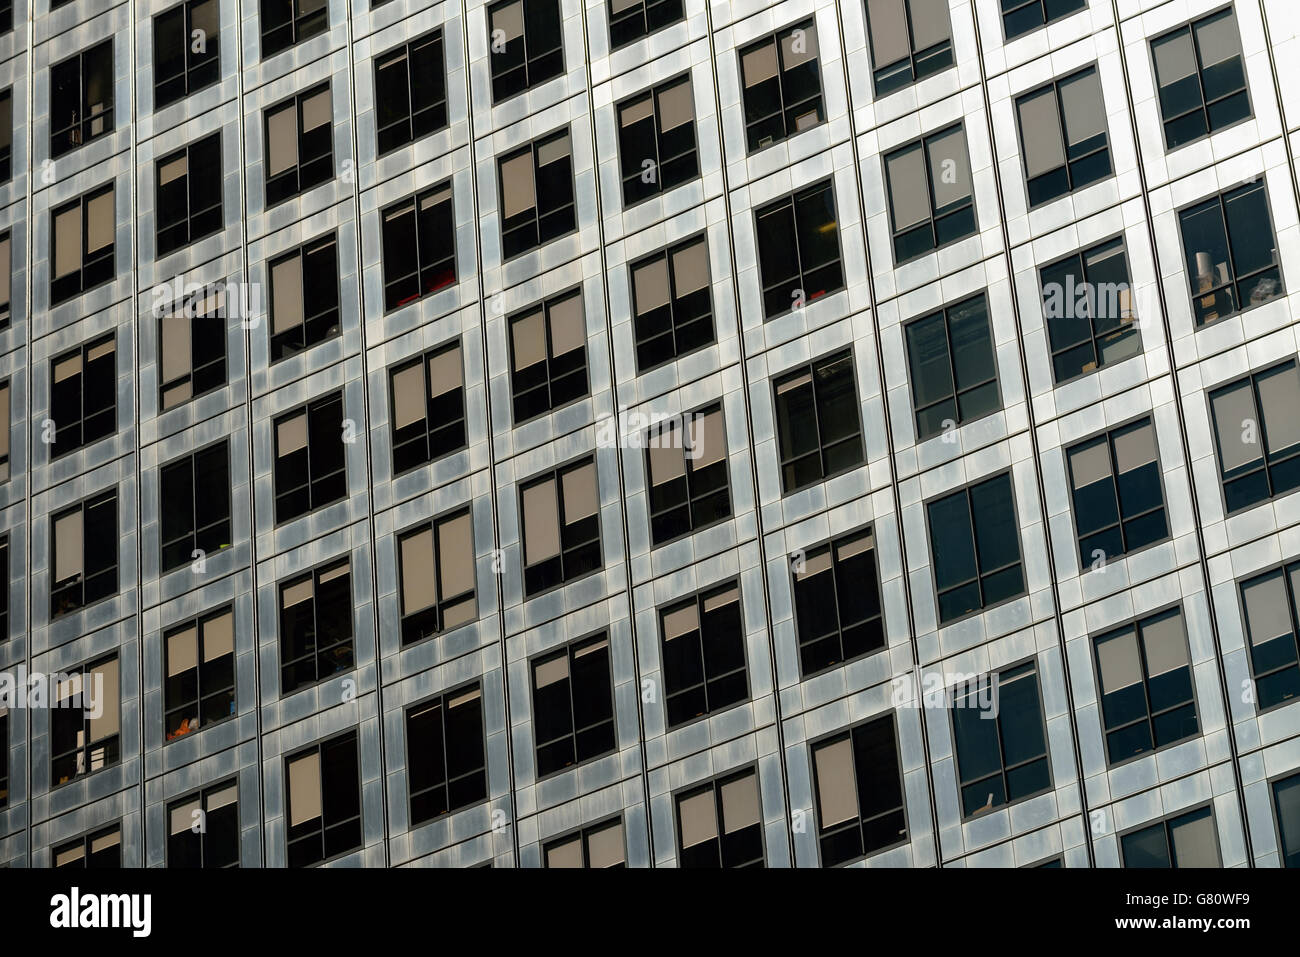 Stainless steel office facade, One Canada Square, Canary Wharf, London E14, United Kingdom - Stock Image